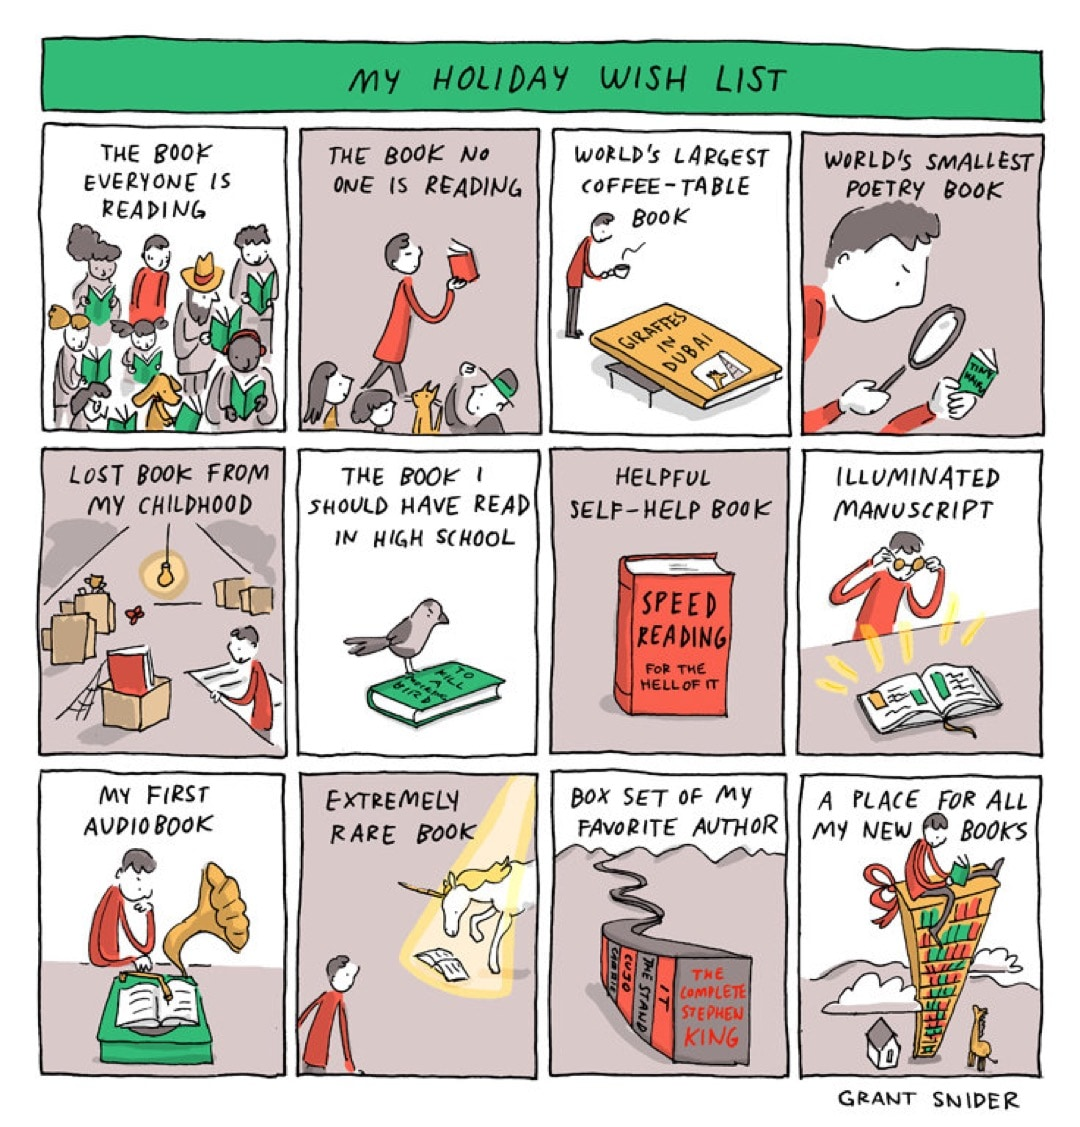 My Holiday Wish List by Grant Snider - best cartoons about books